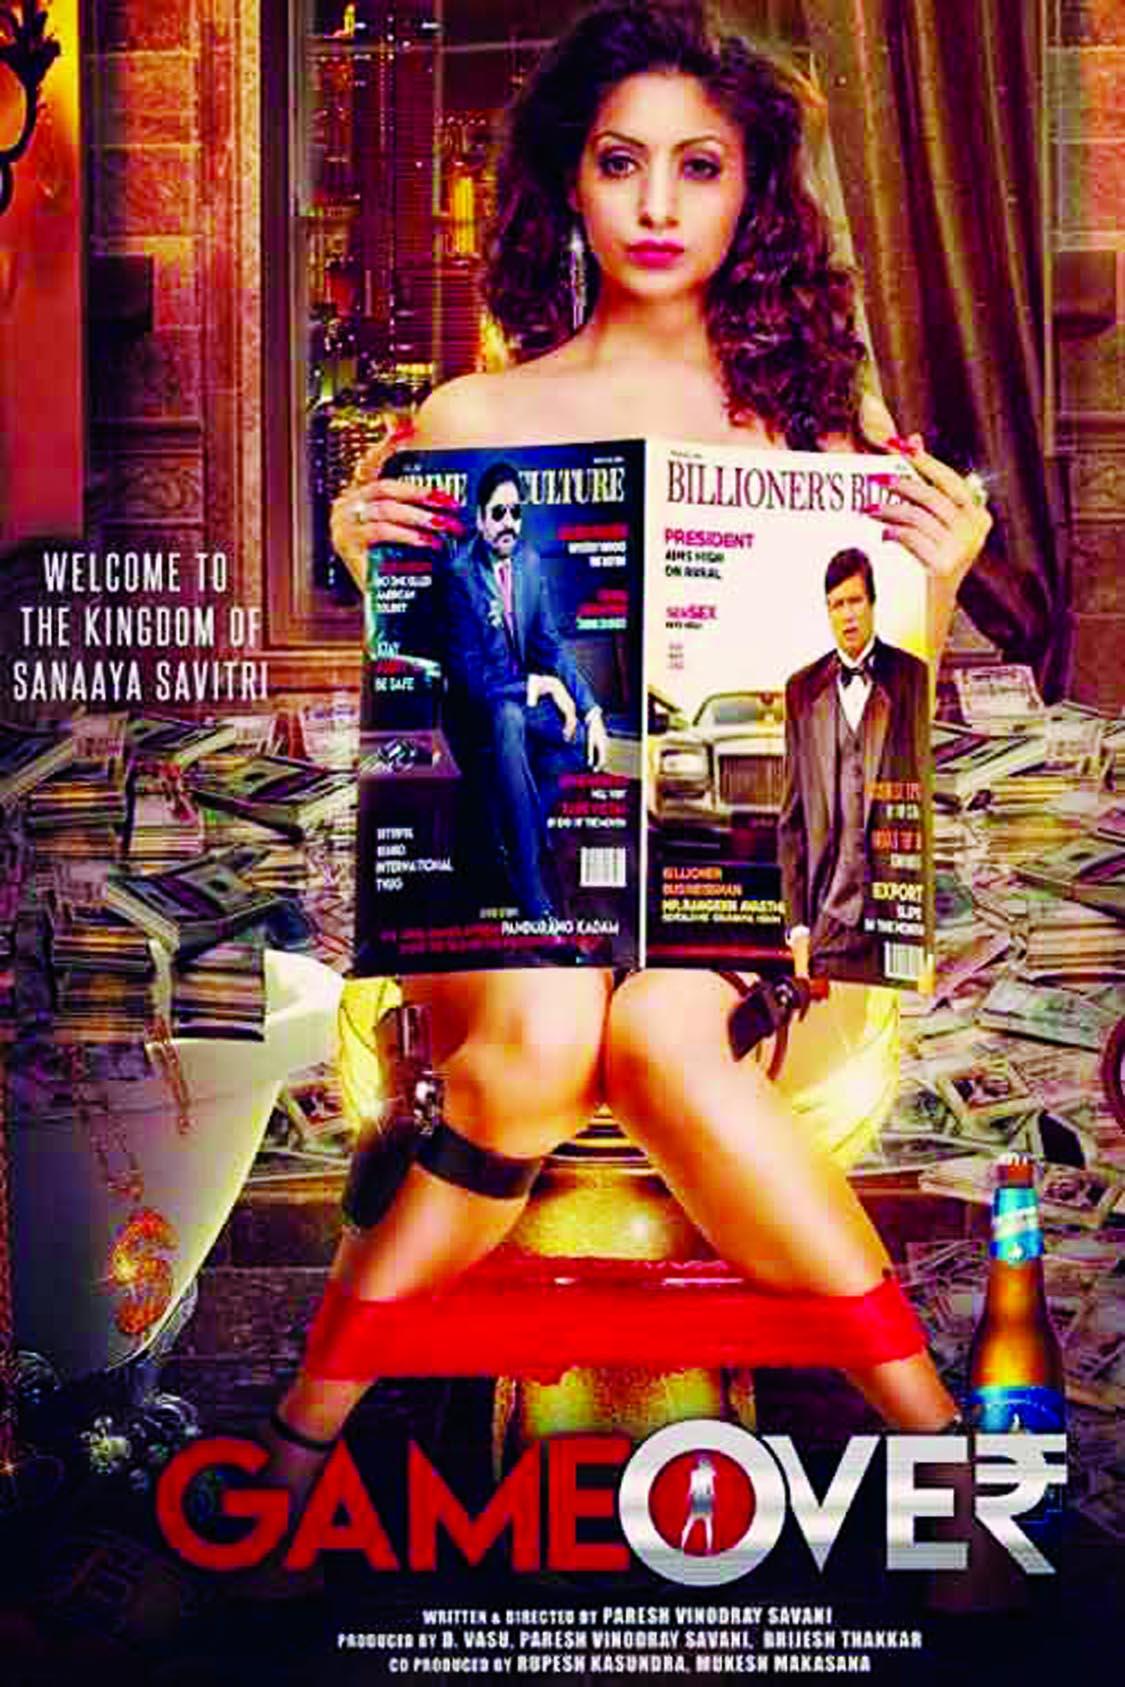 Exclusive Poster - Gurleen Chopra in a totally new avatar